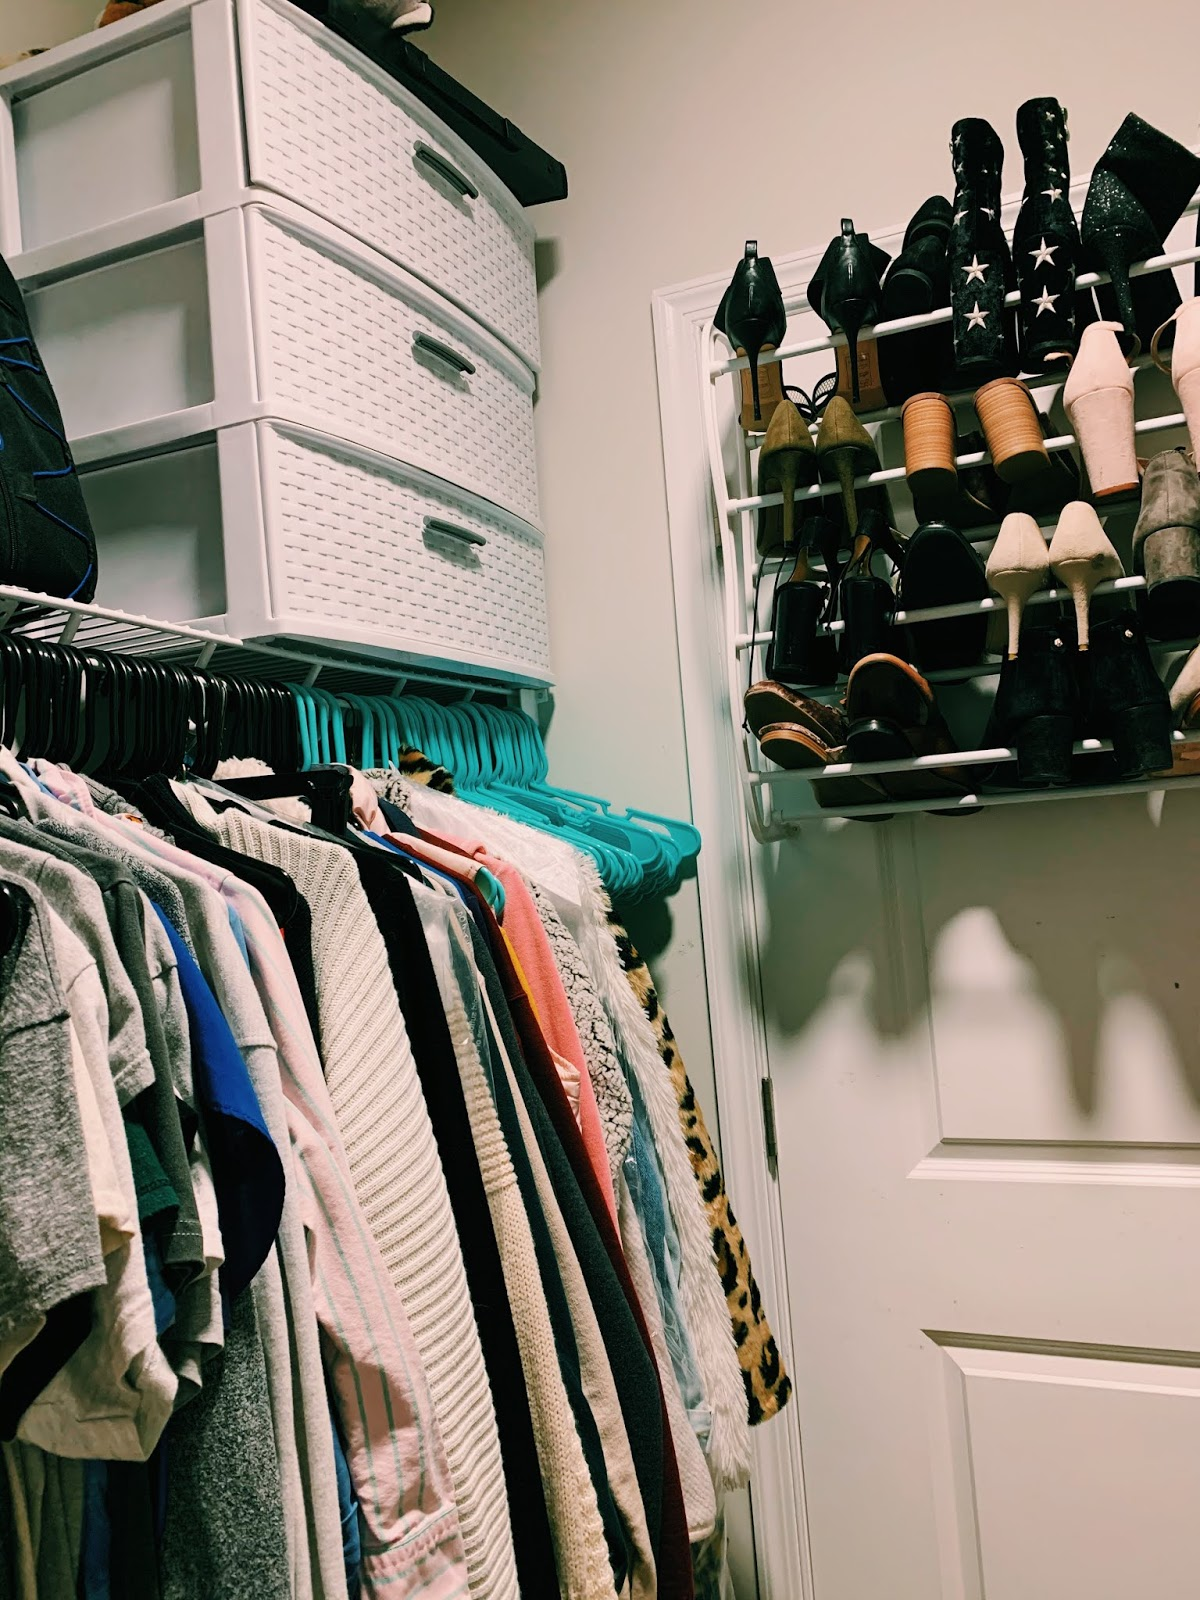 Closet Clean-Out!